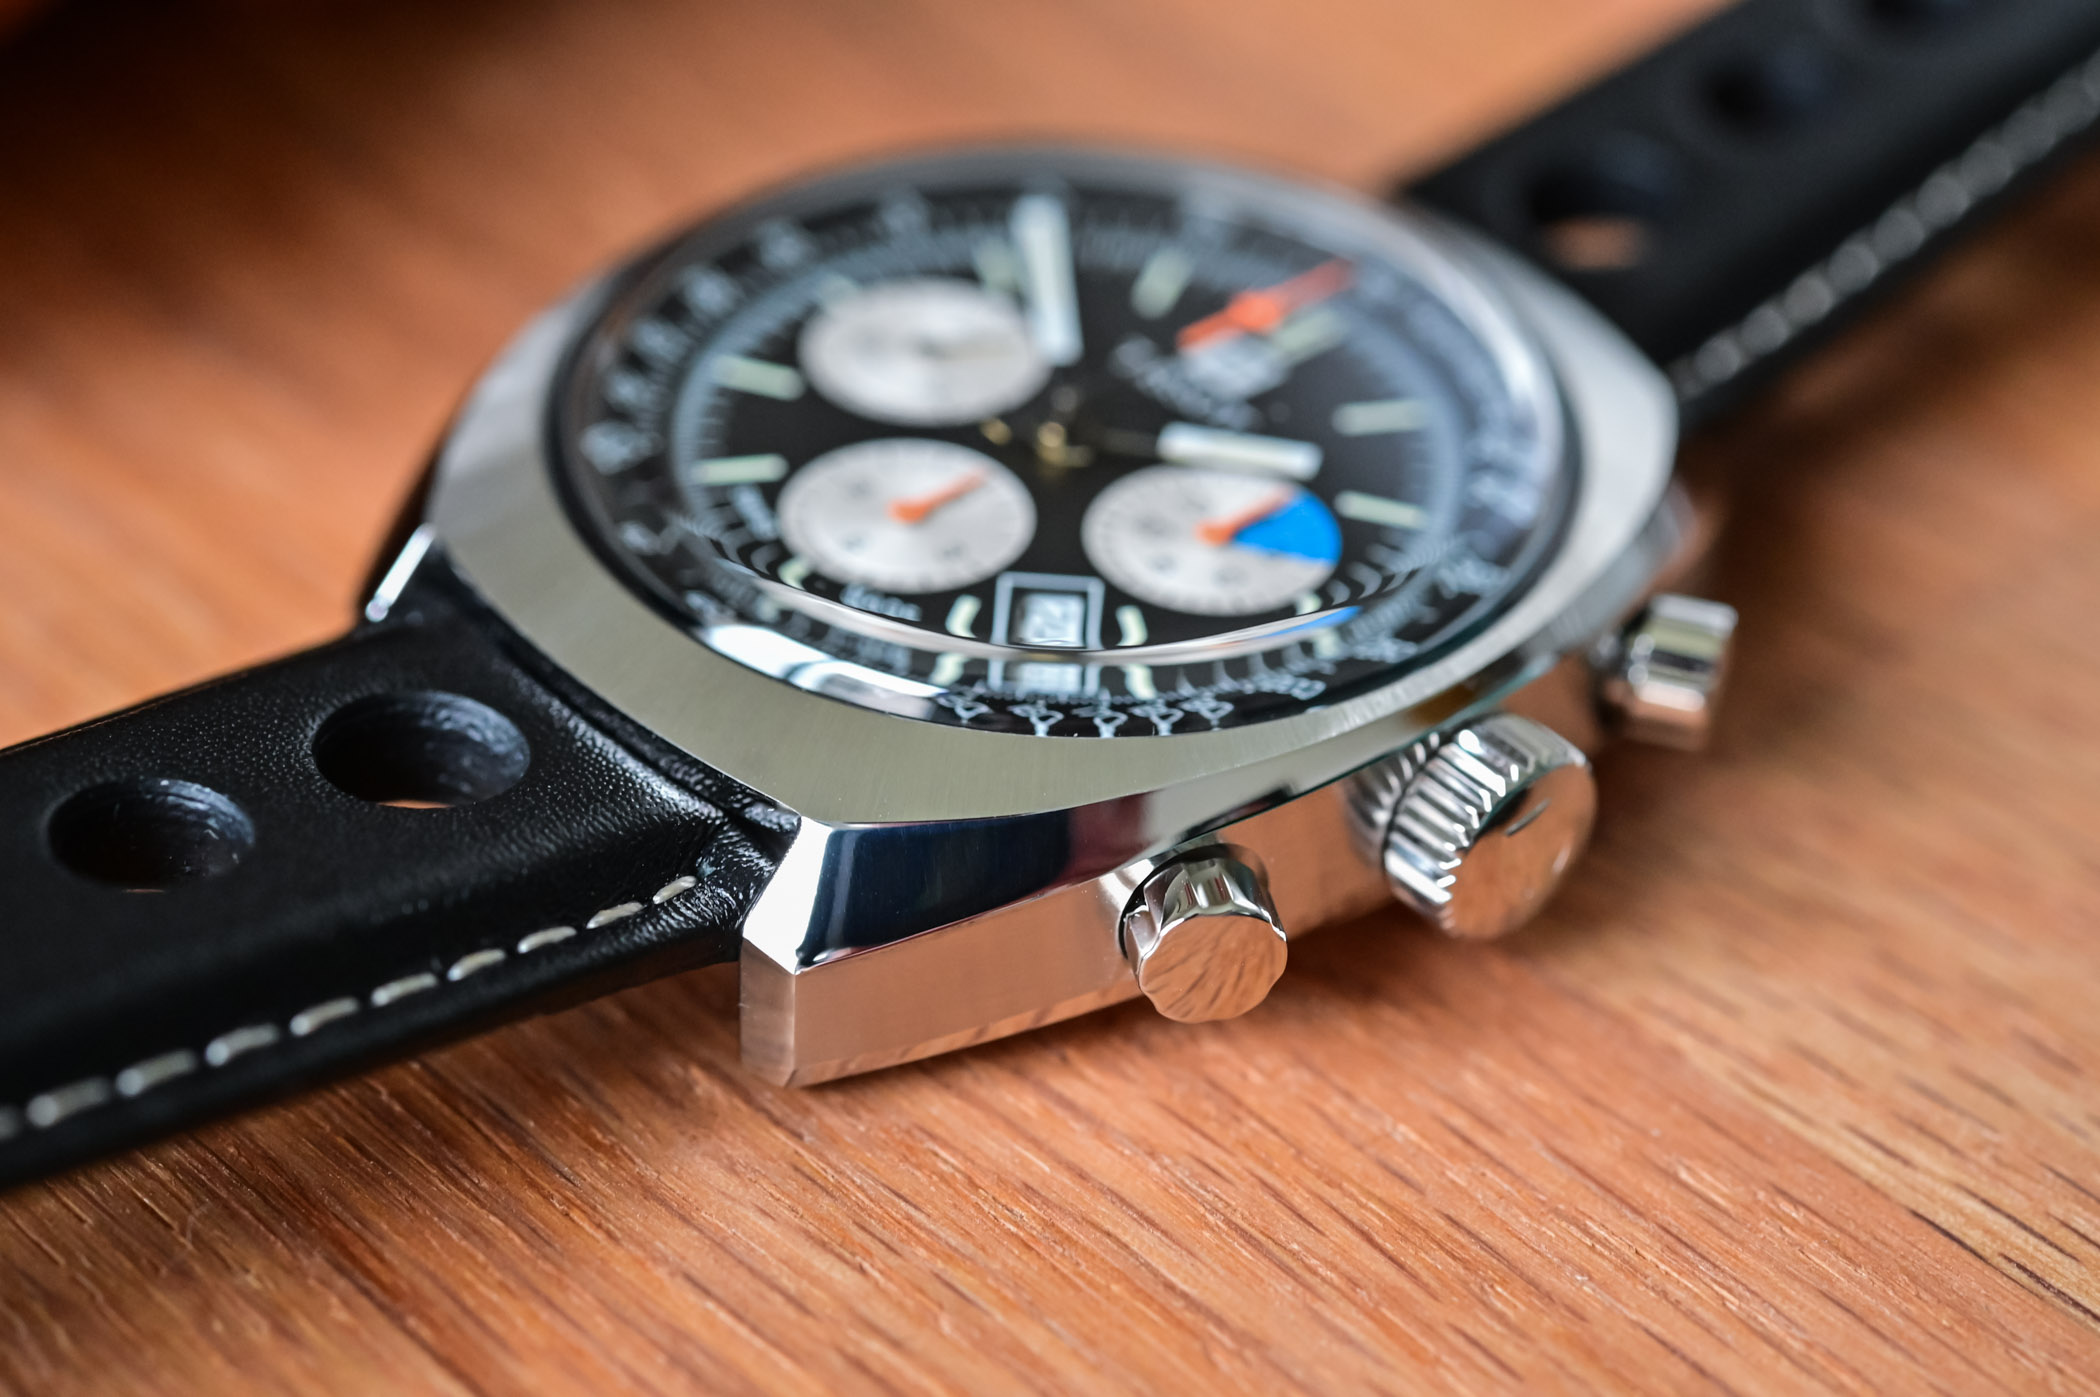 tissot heritage 1973 chronograph T124.427.16.051.00 review - 3